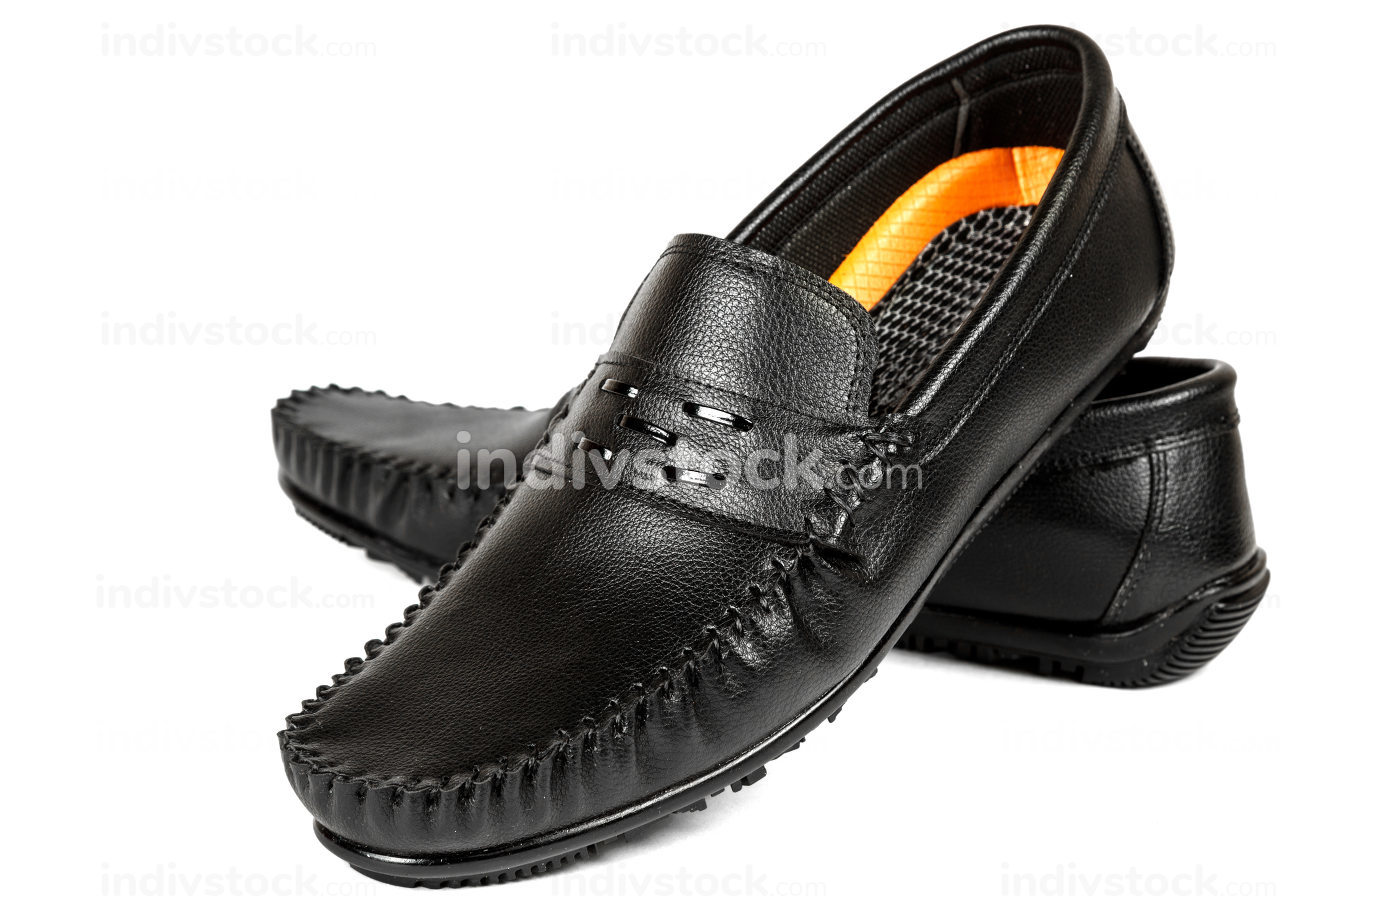 black leather shoes on a white isolated background